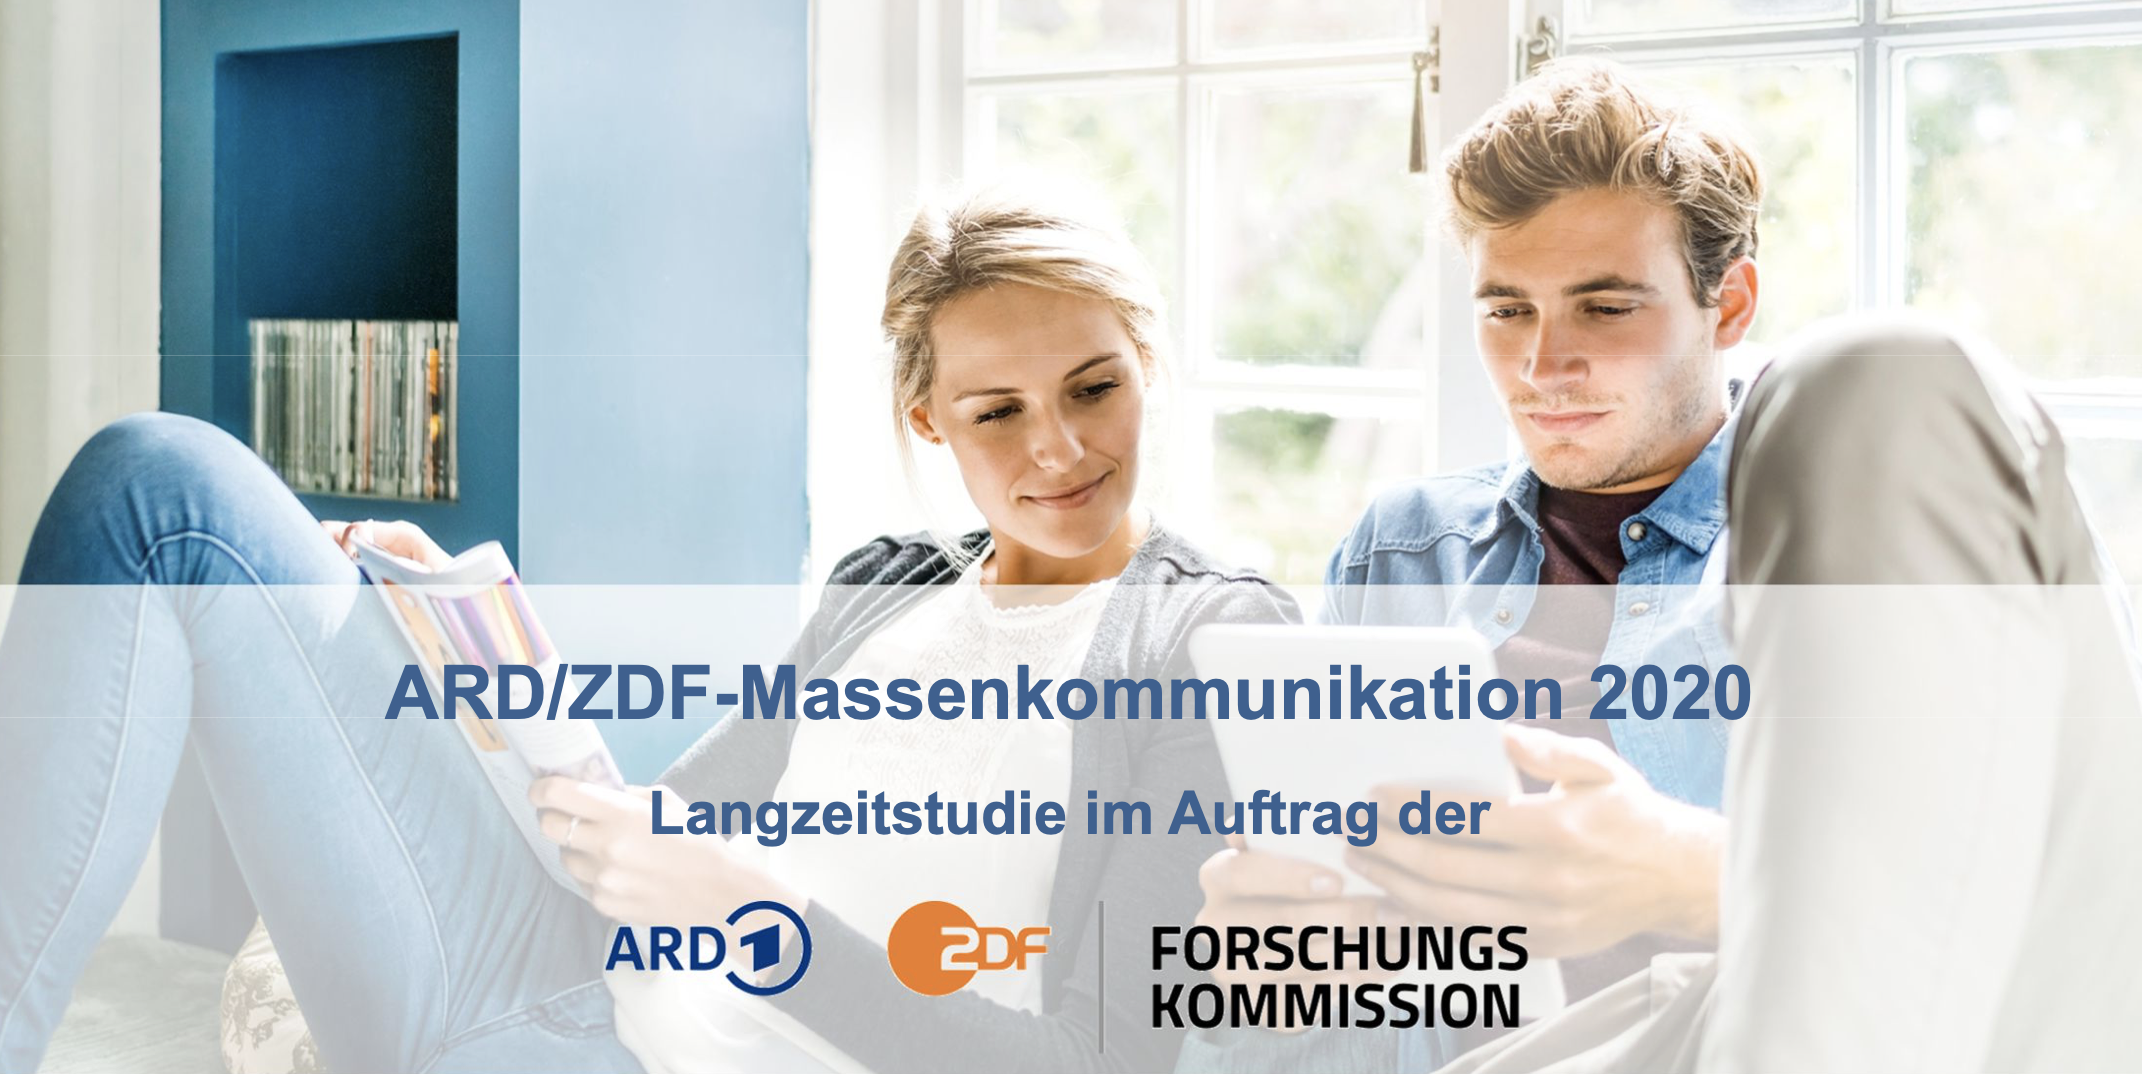 Ard-reportage von anfang an elite investment venpath investments for kids